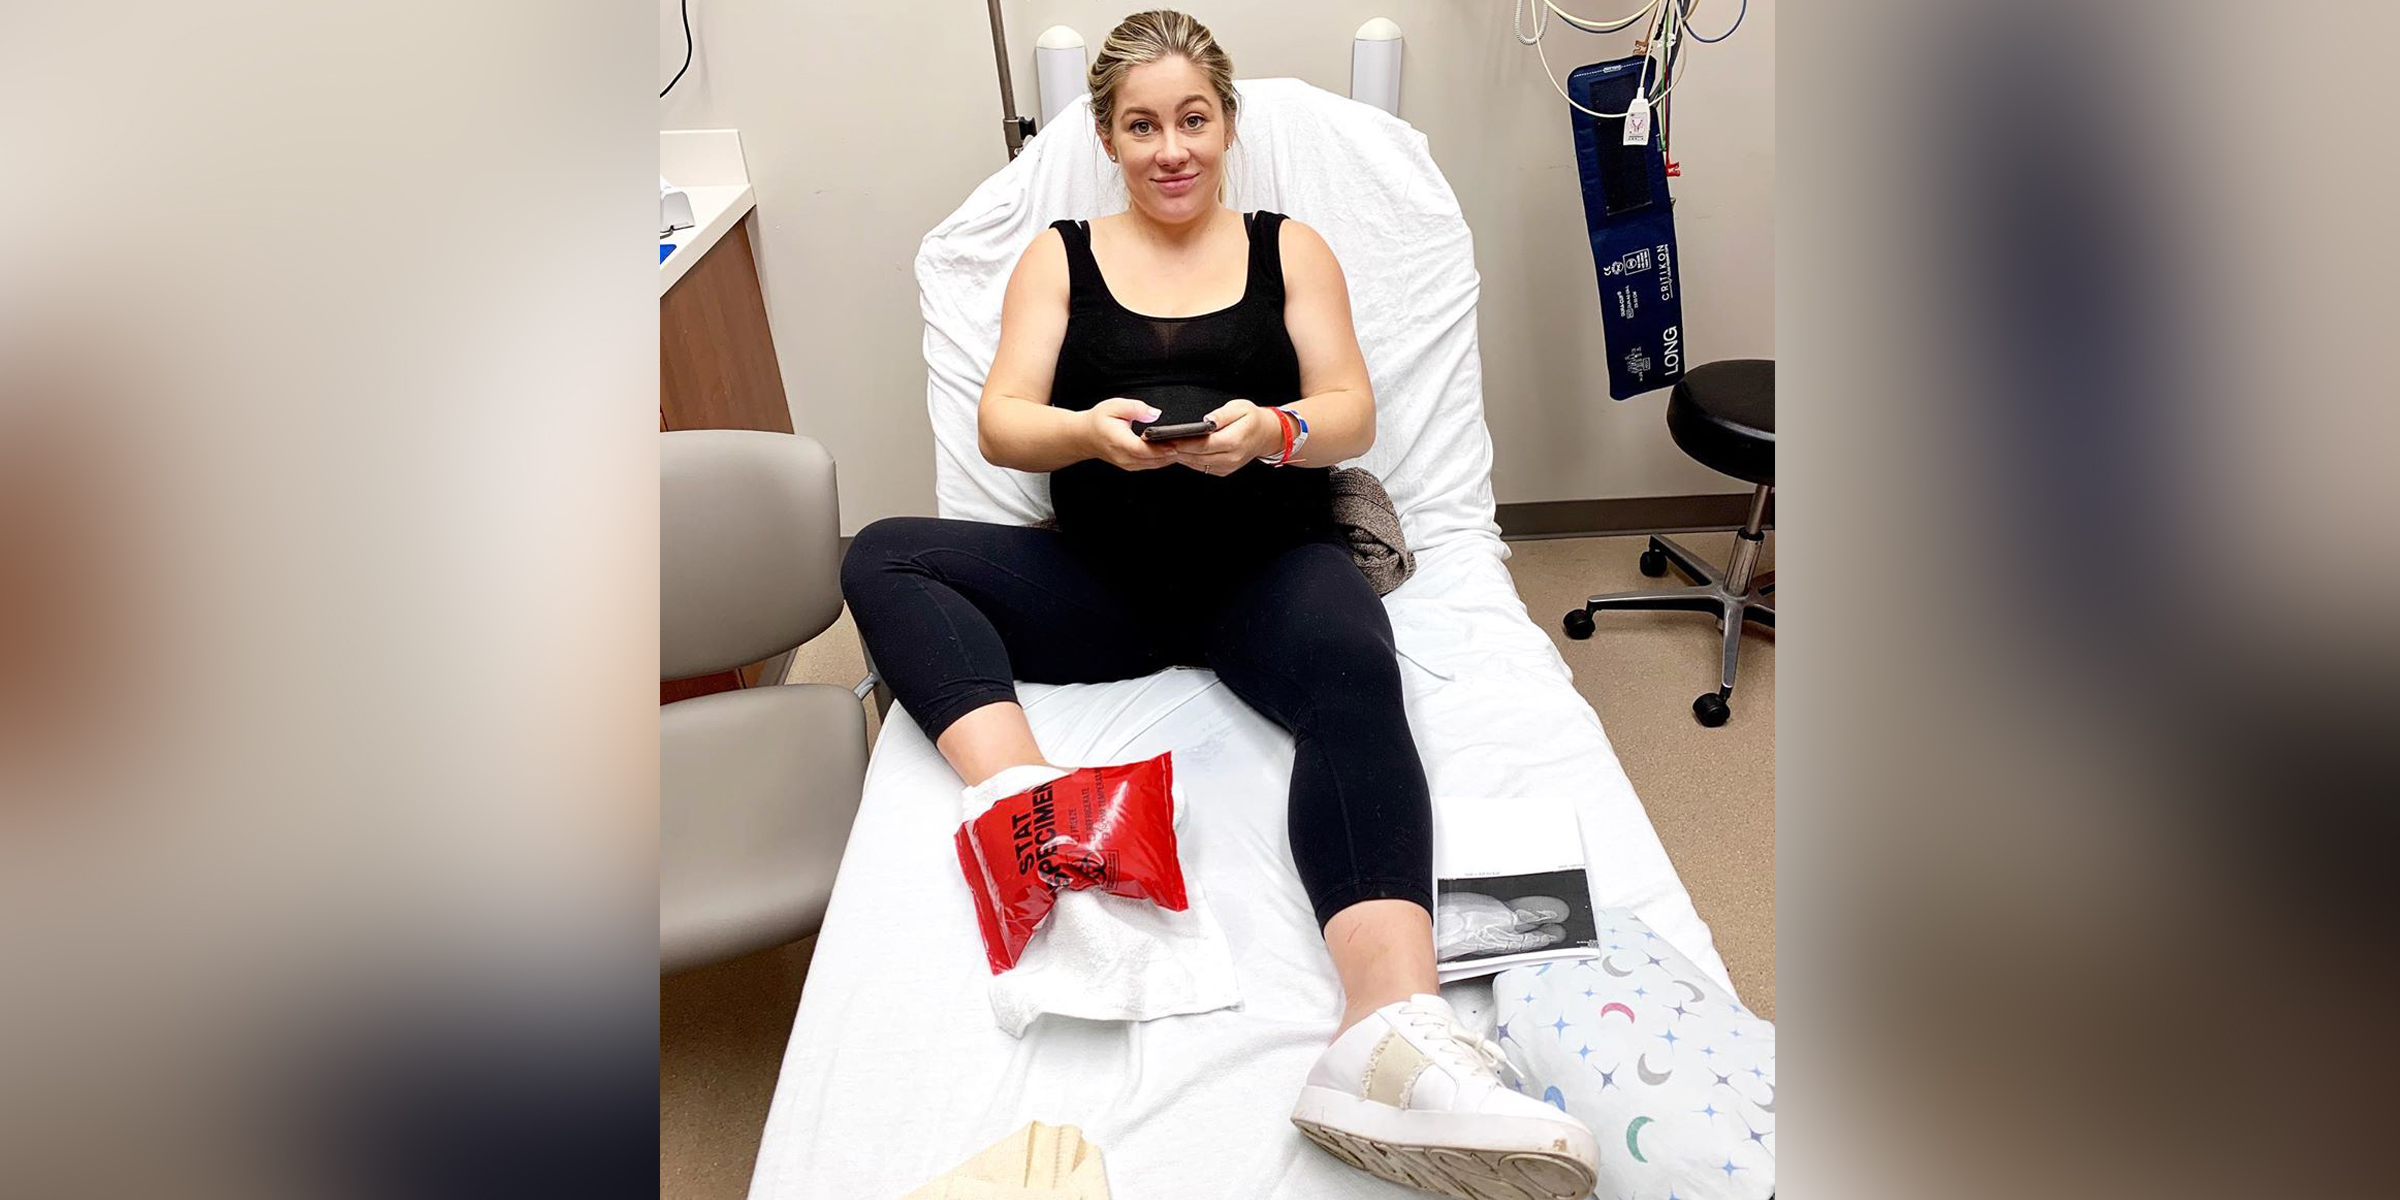 Shawn Johnson East, 38 weeks pregnant, ended up in the ER after 'freak accident'